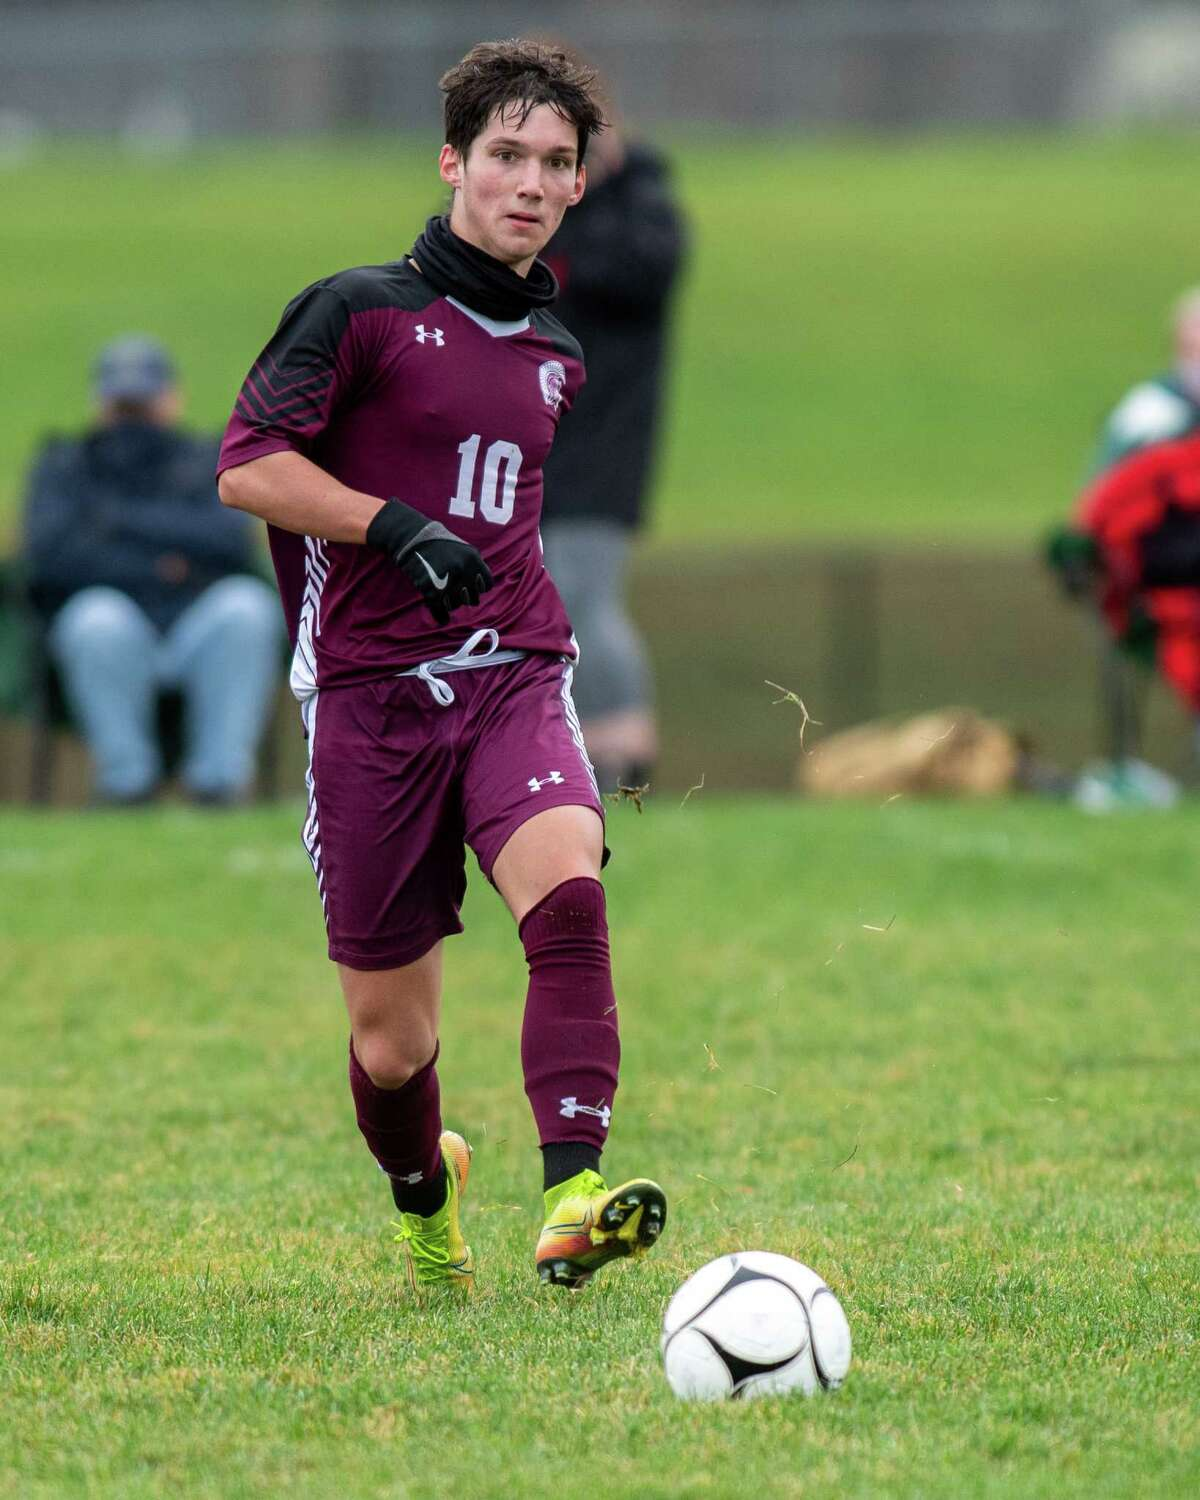 Greenville senior James Mitchell moves the ball upfield during a Patroon Conference matchup against Maple Hill. Mitchell was named Athlete of the Year.